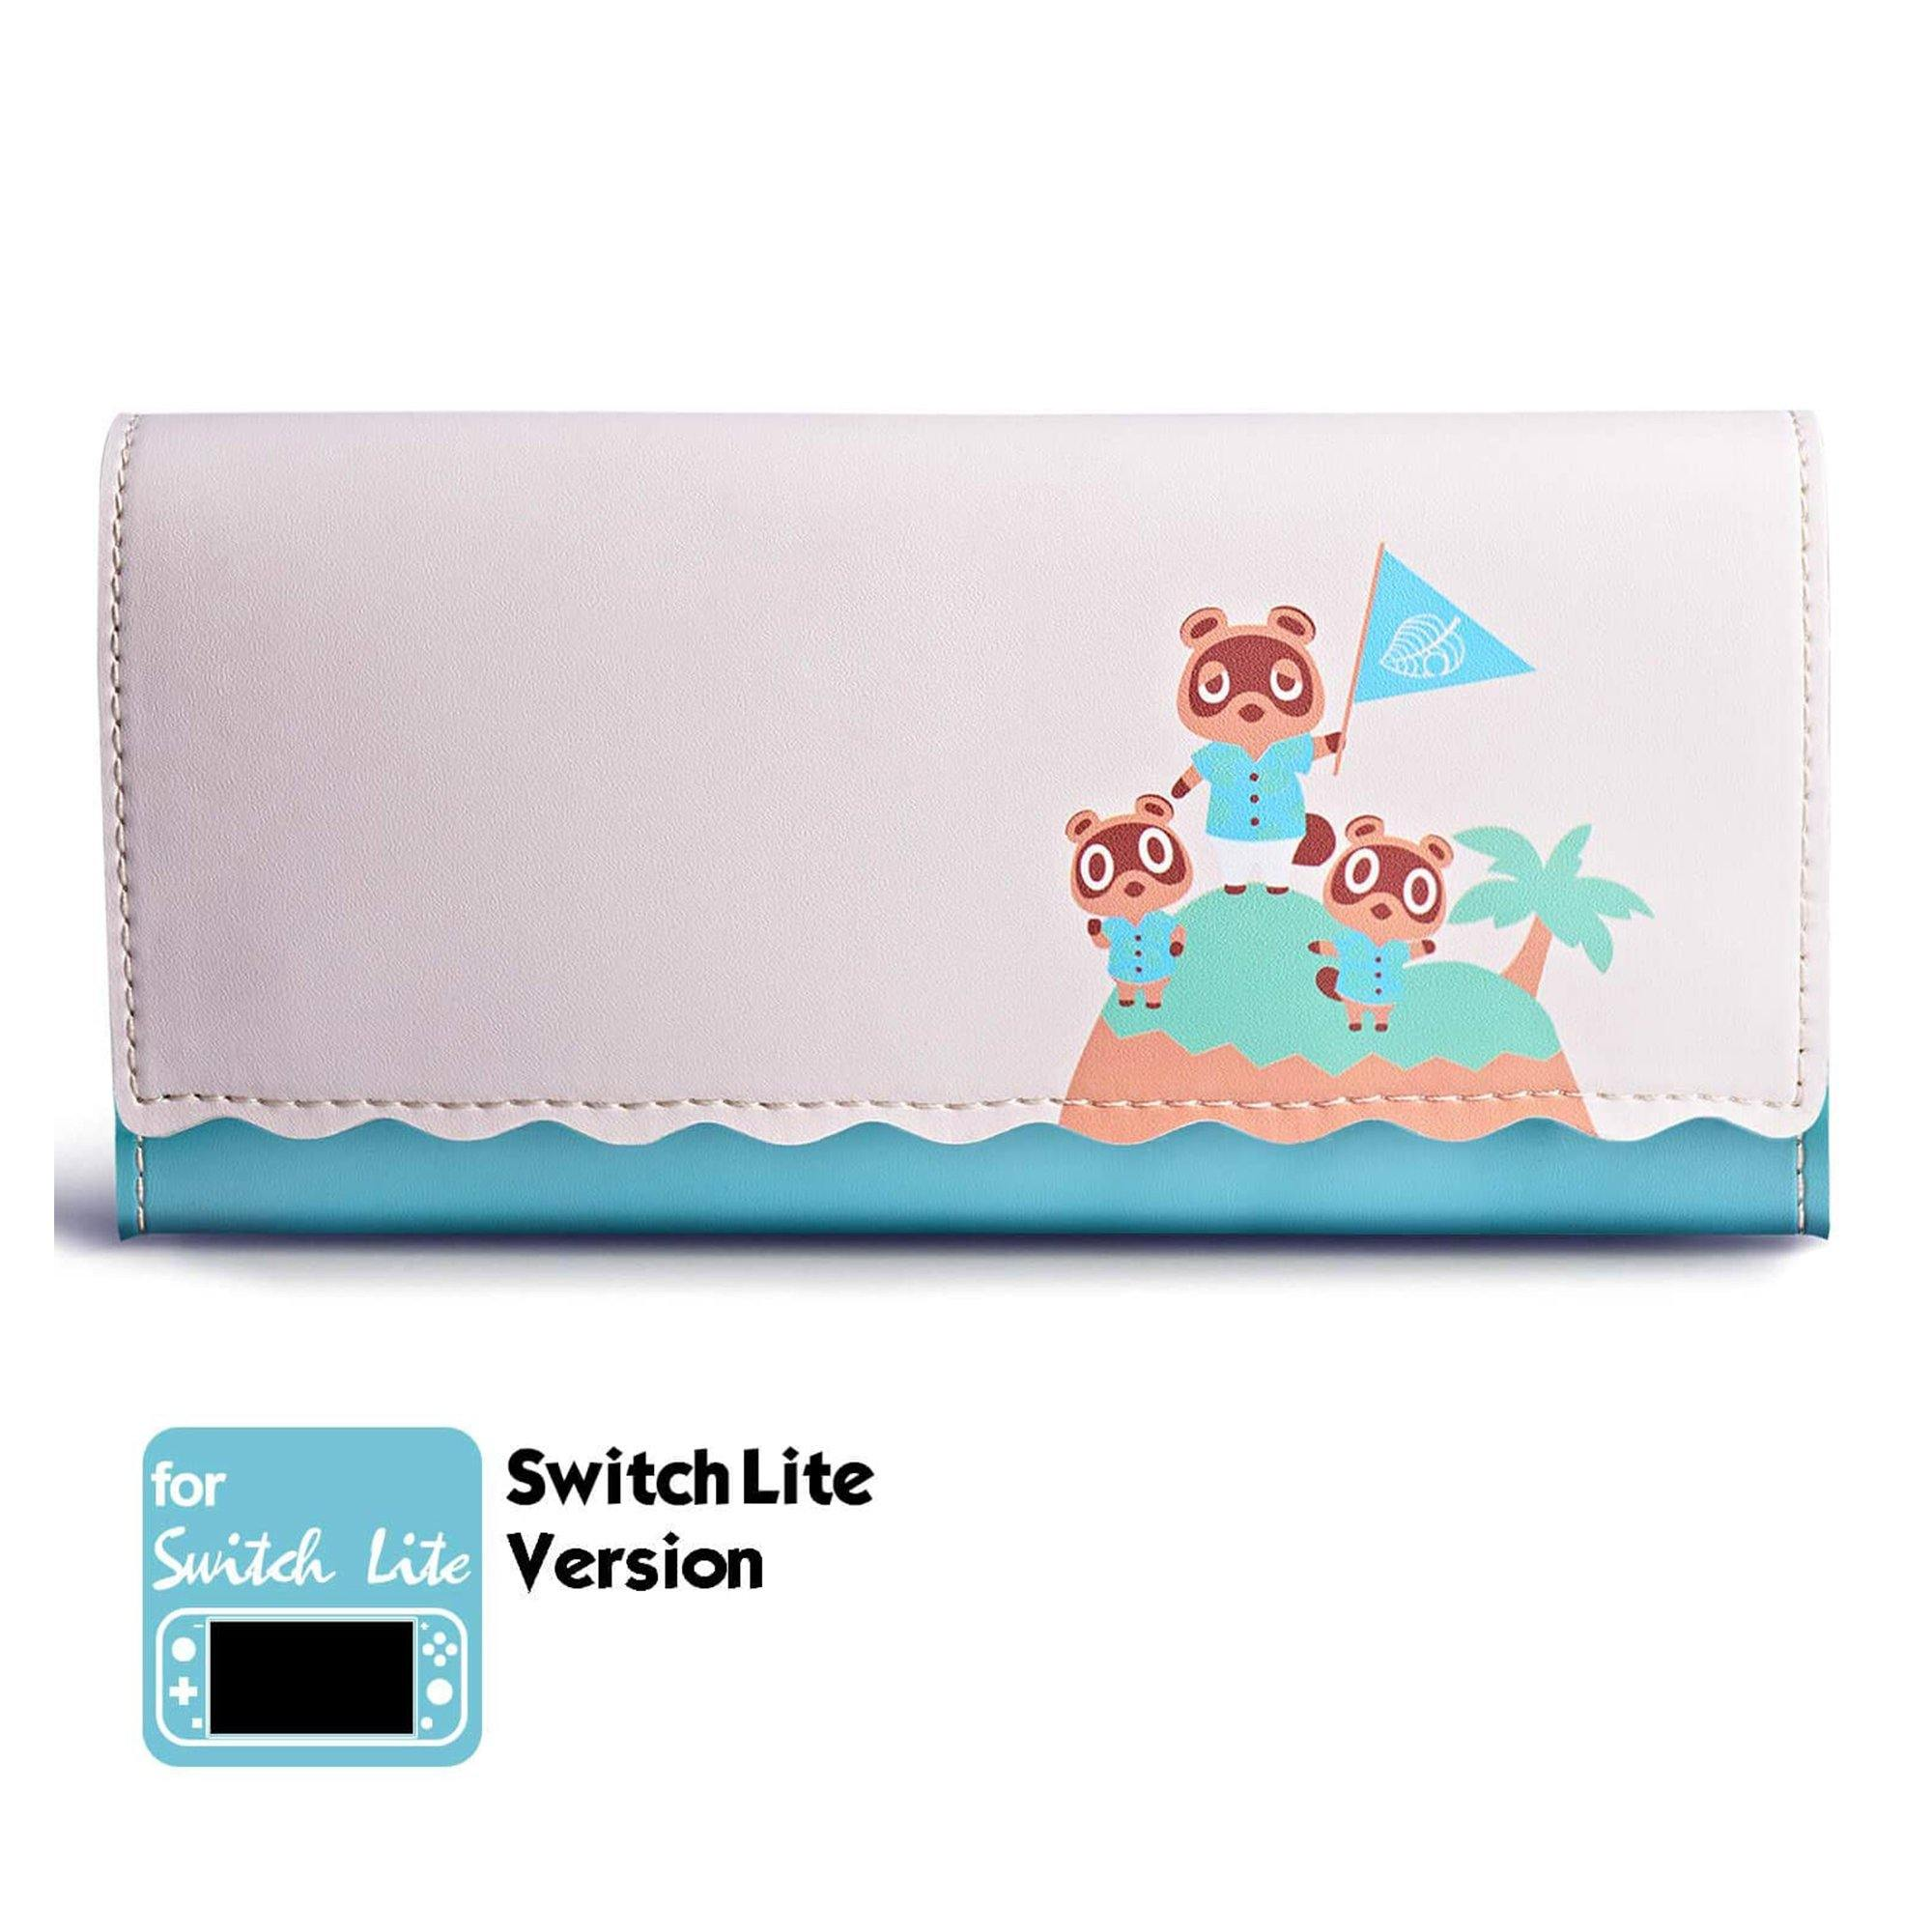 Carrying Case( Tom Nook Island) For Nintendo Switch Lite - Funlab